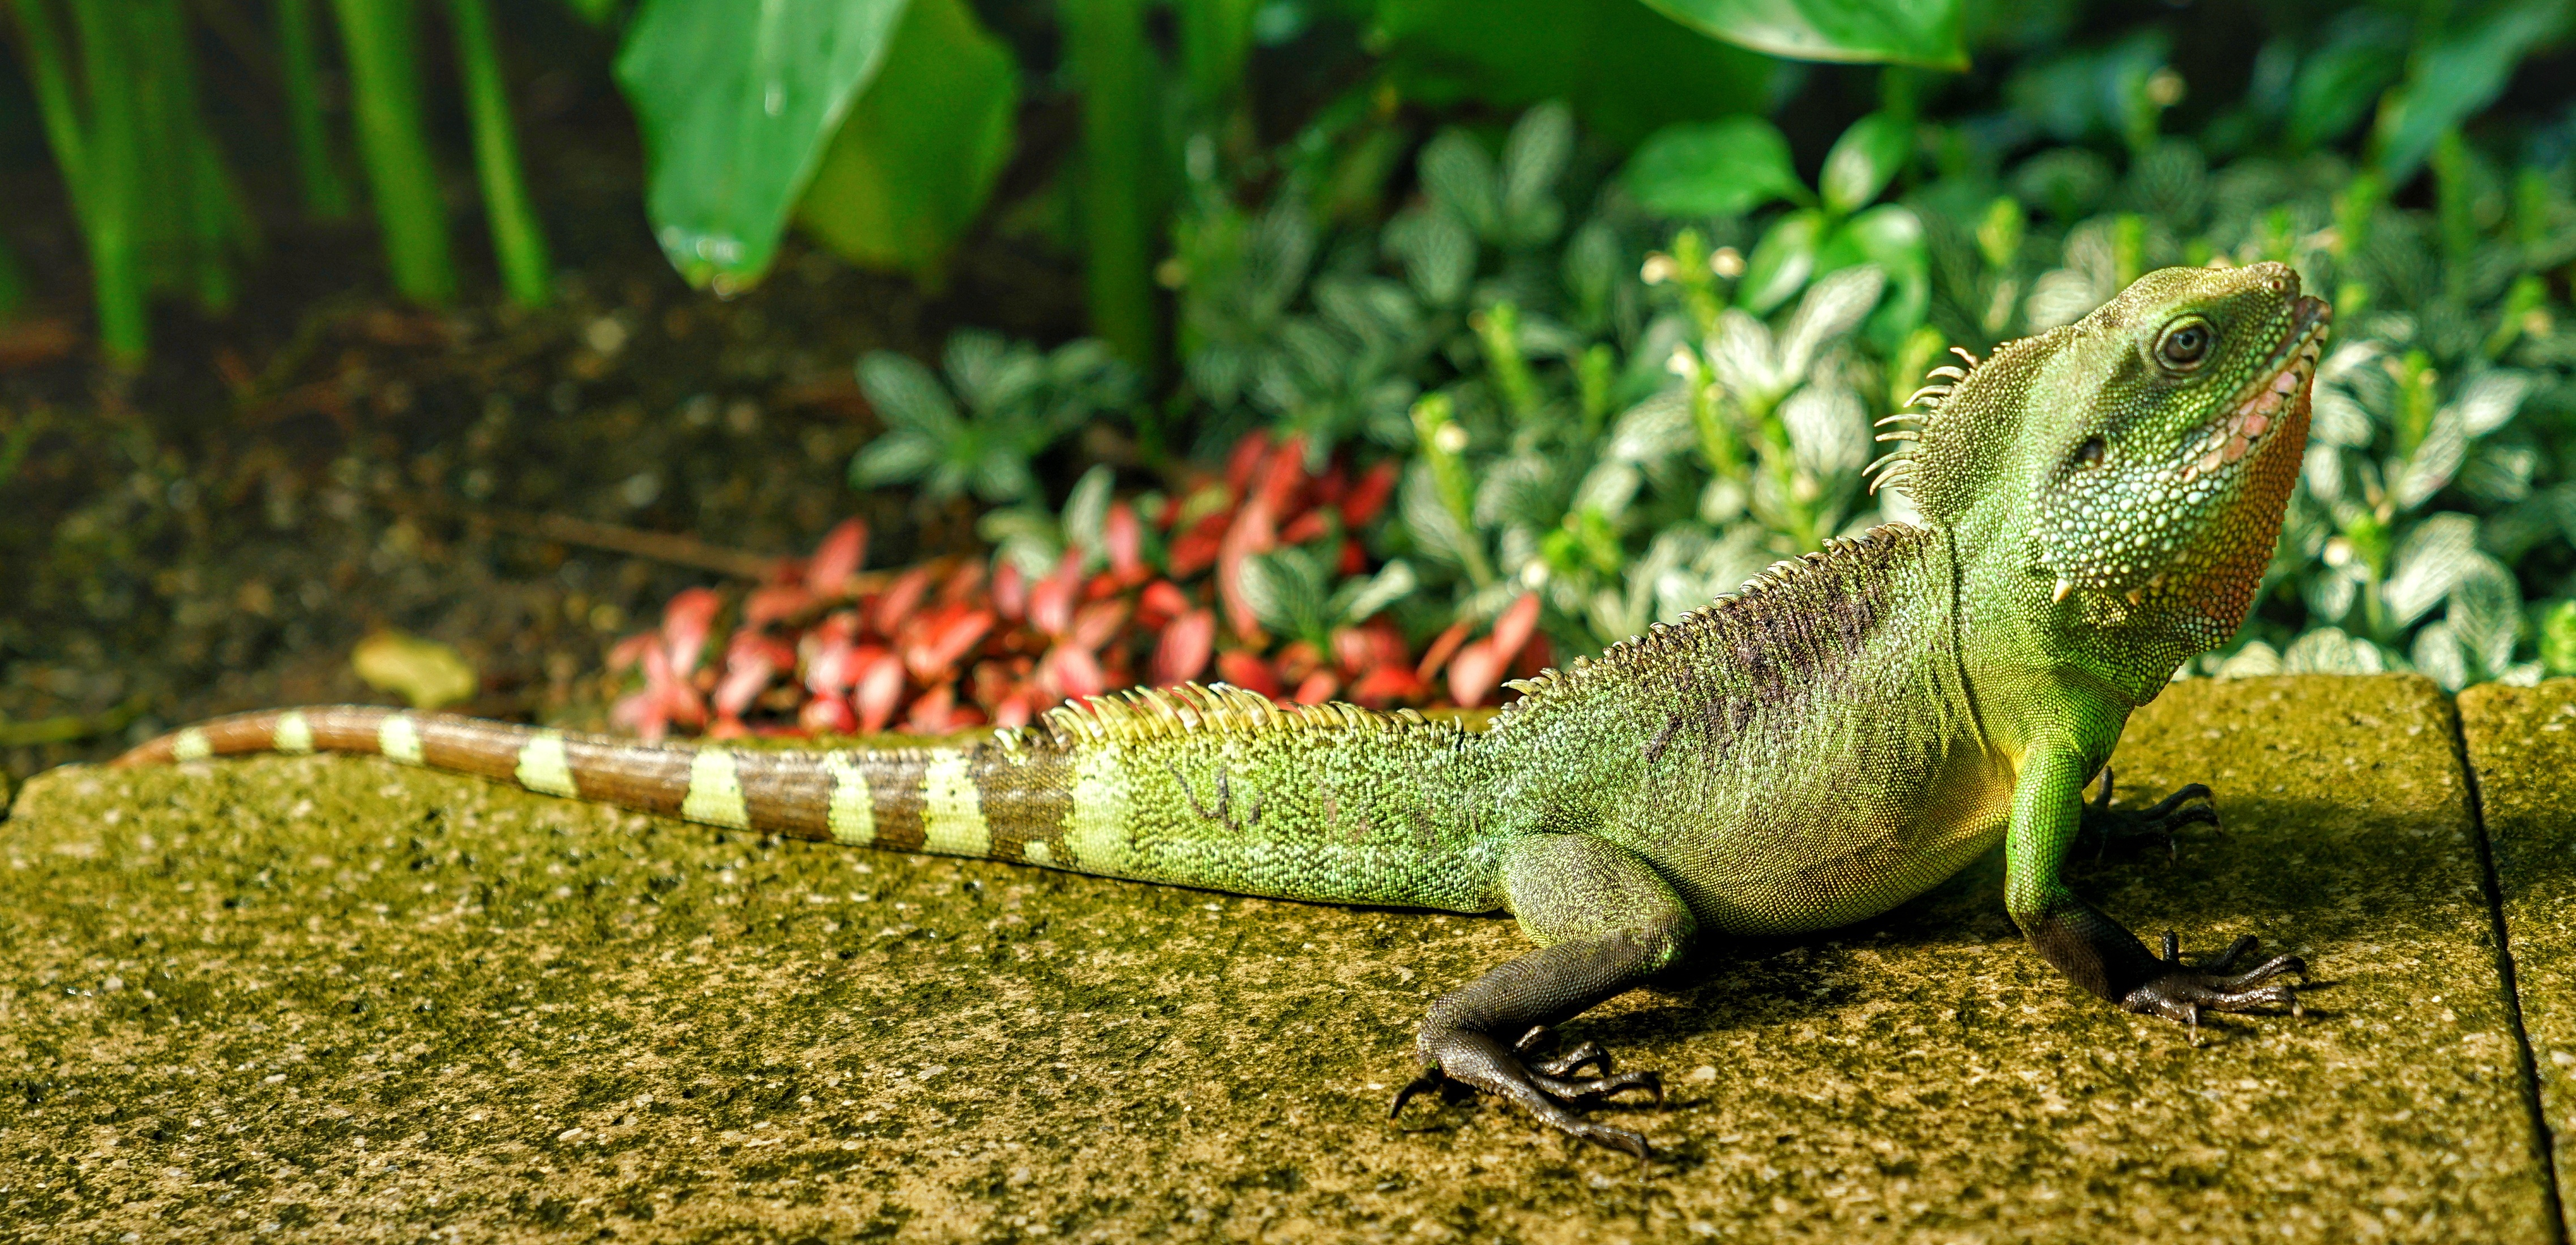 140644 download wallpaper Animals, Lizard, Reptile, Color screensavers and pictures for free